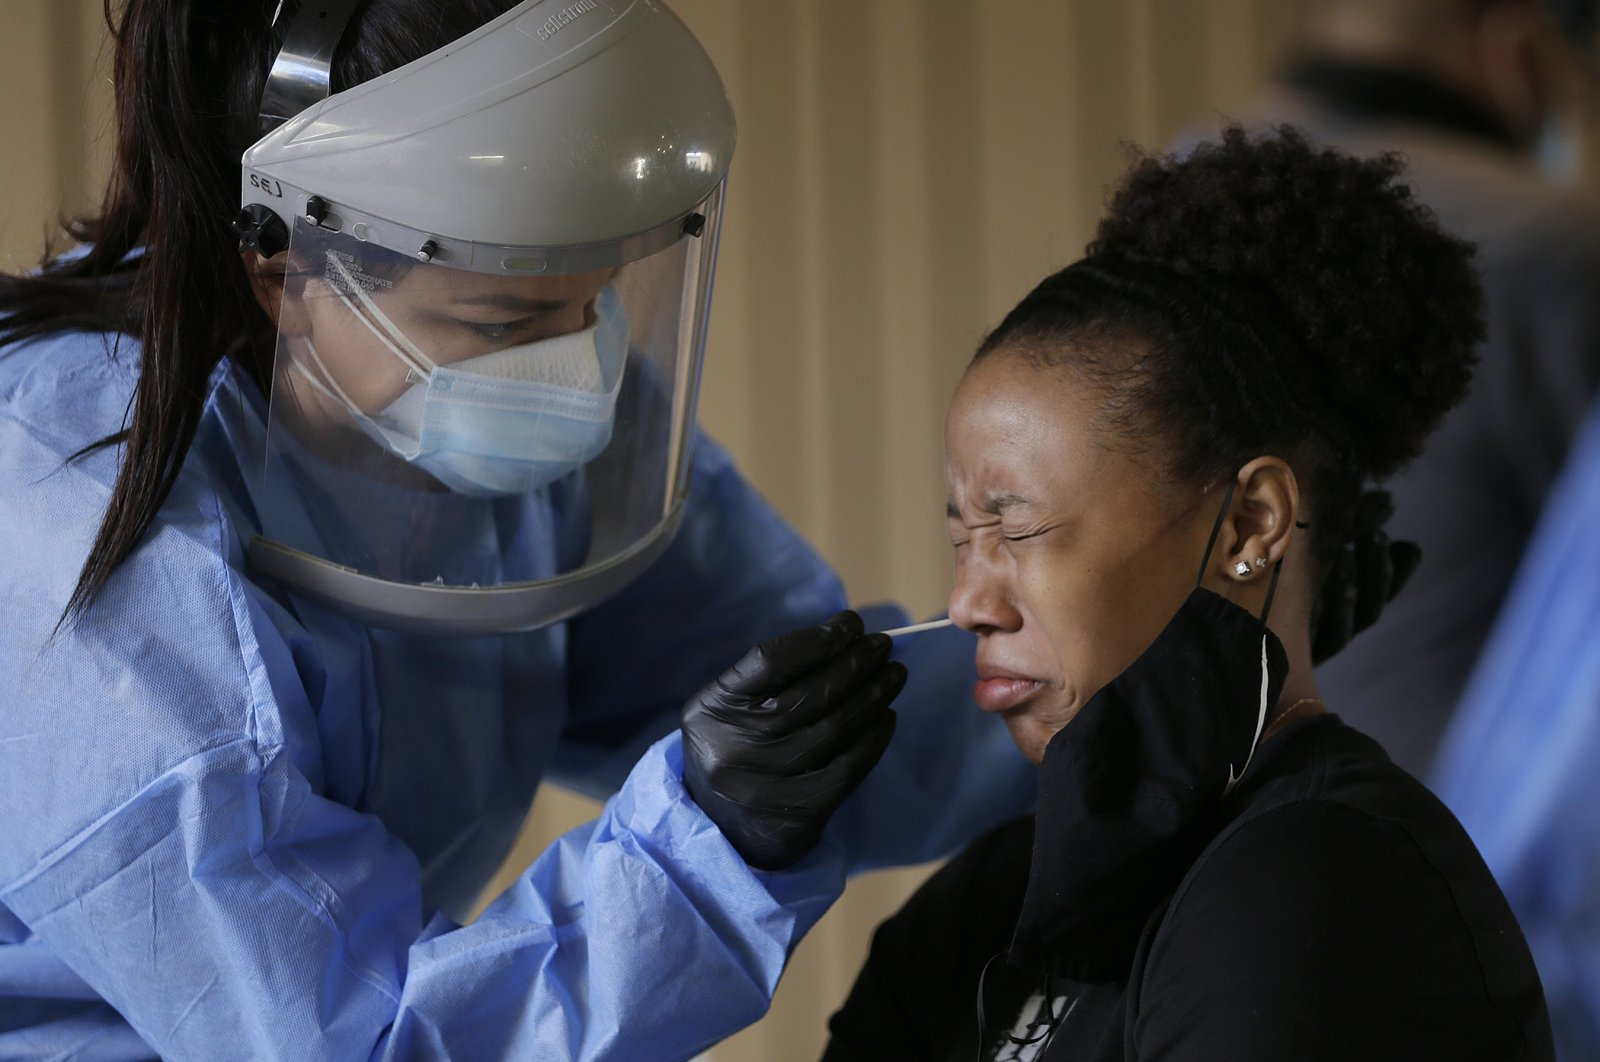 A medical worker tests a university student for coronavirus at the UTEP Fox Fine Arts Center in El Paso, Texas, U.S., Oct. 16, 2020. (The El Paso Times via AP)